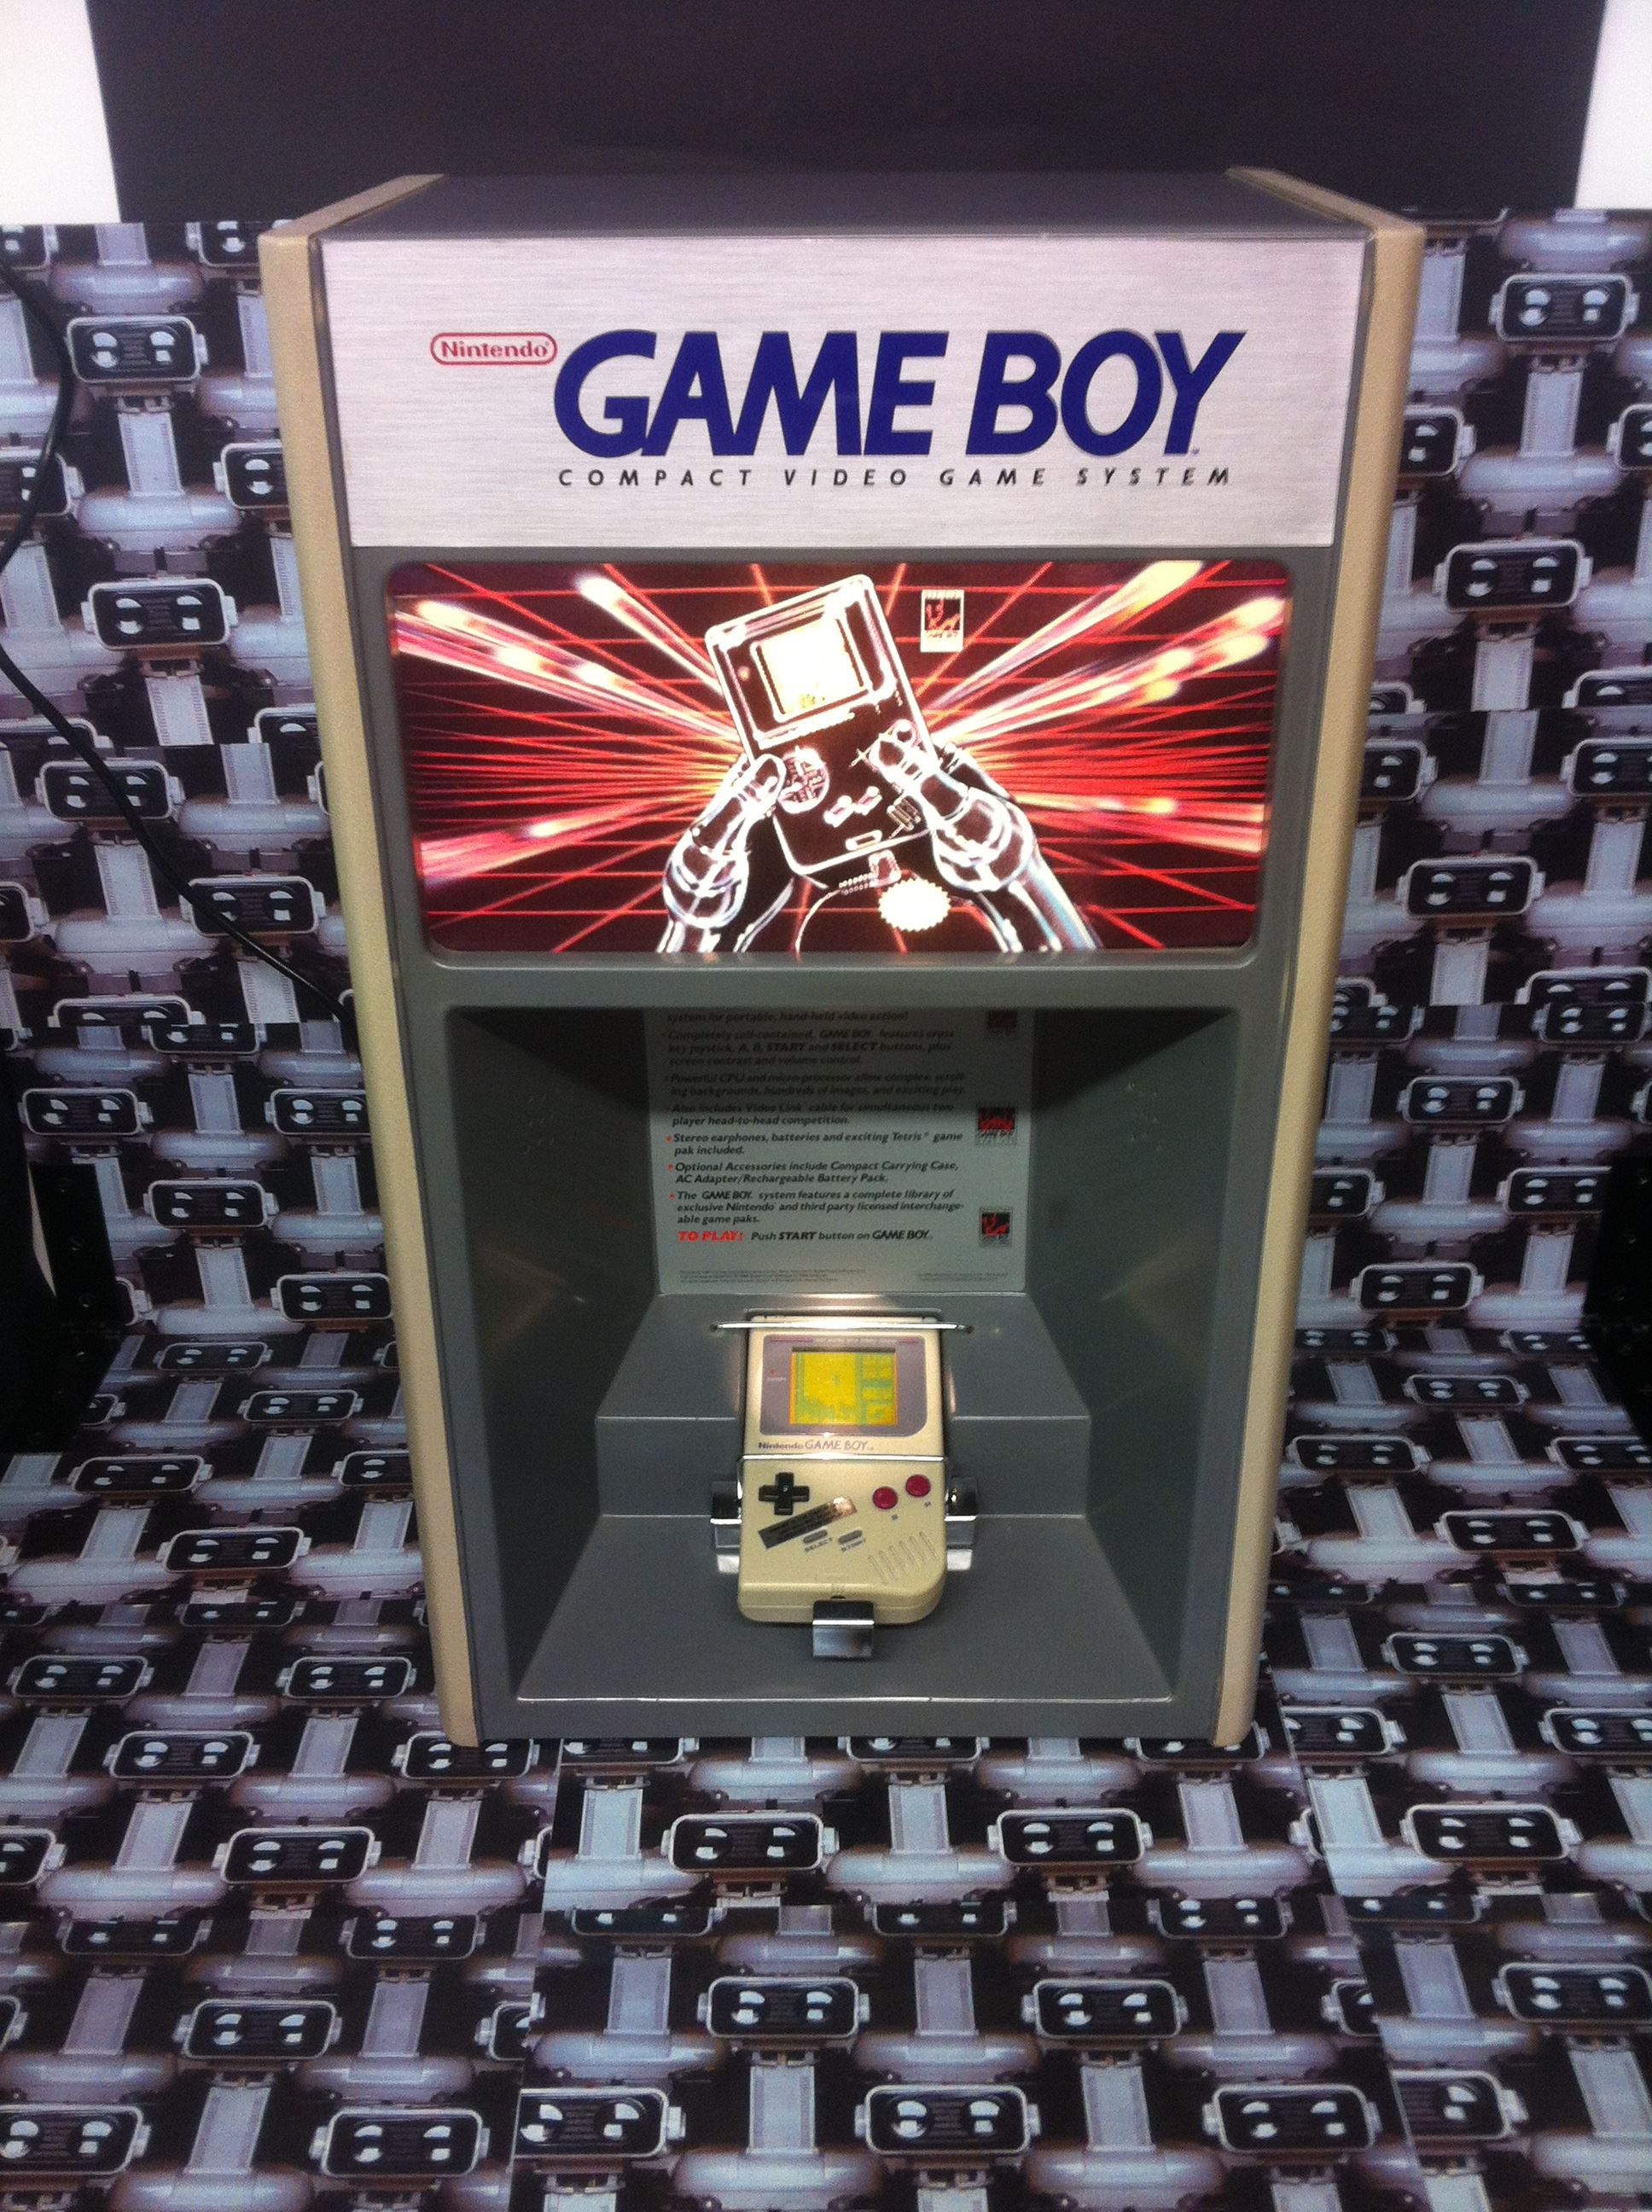 www.nintendo-collection.com - Borne demonstration Gameboy Demo Kiosk - 2